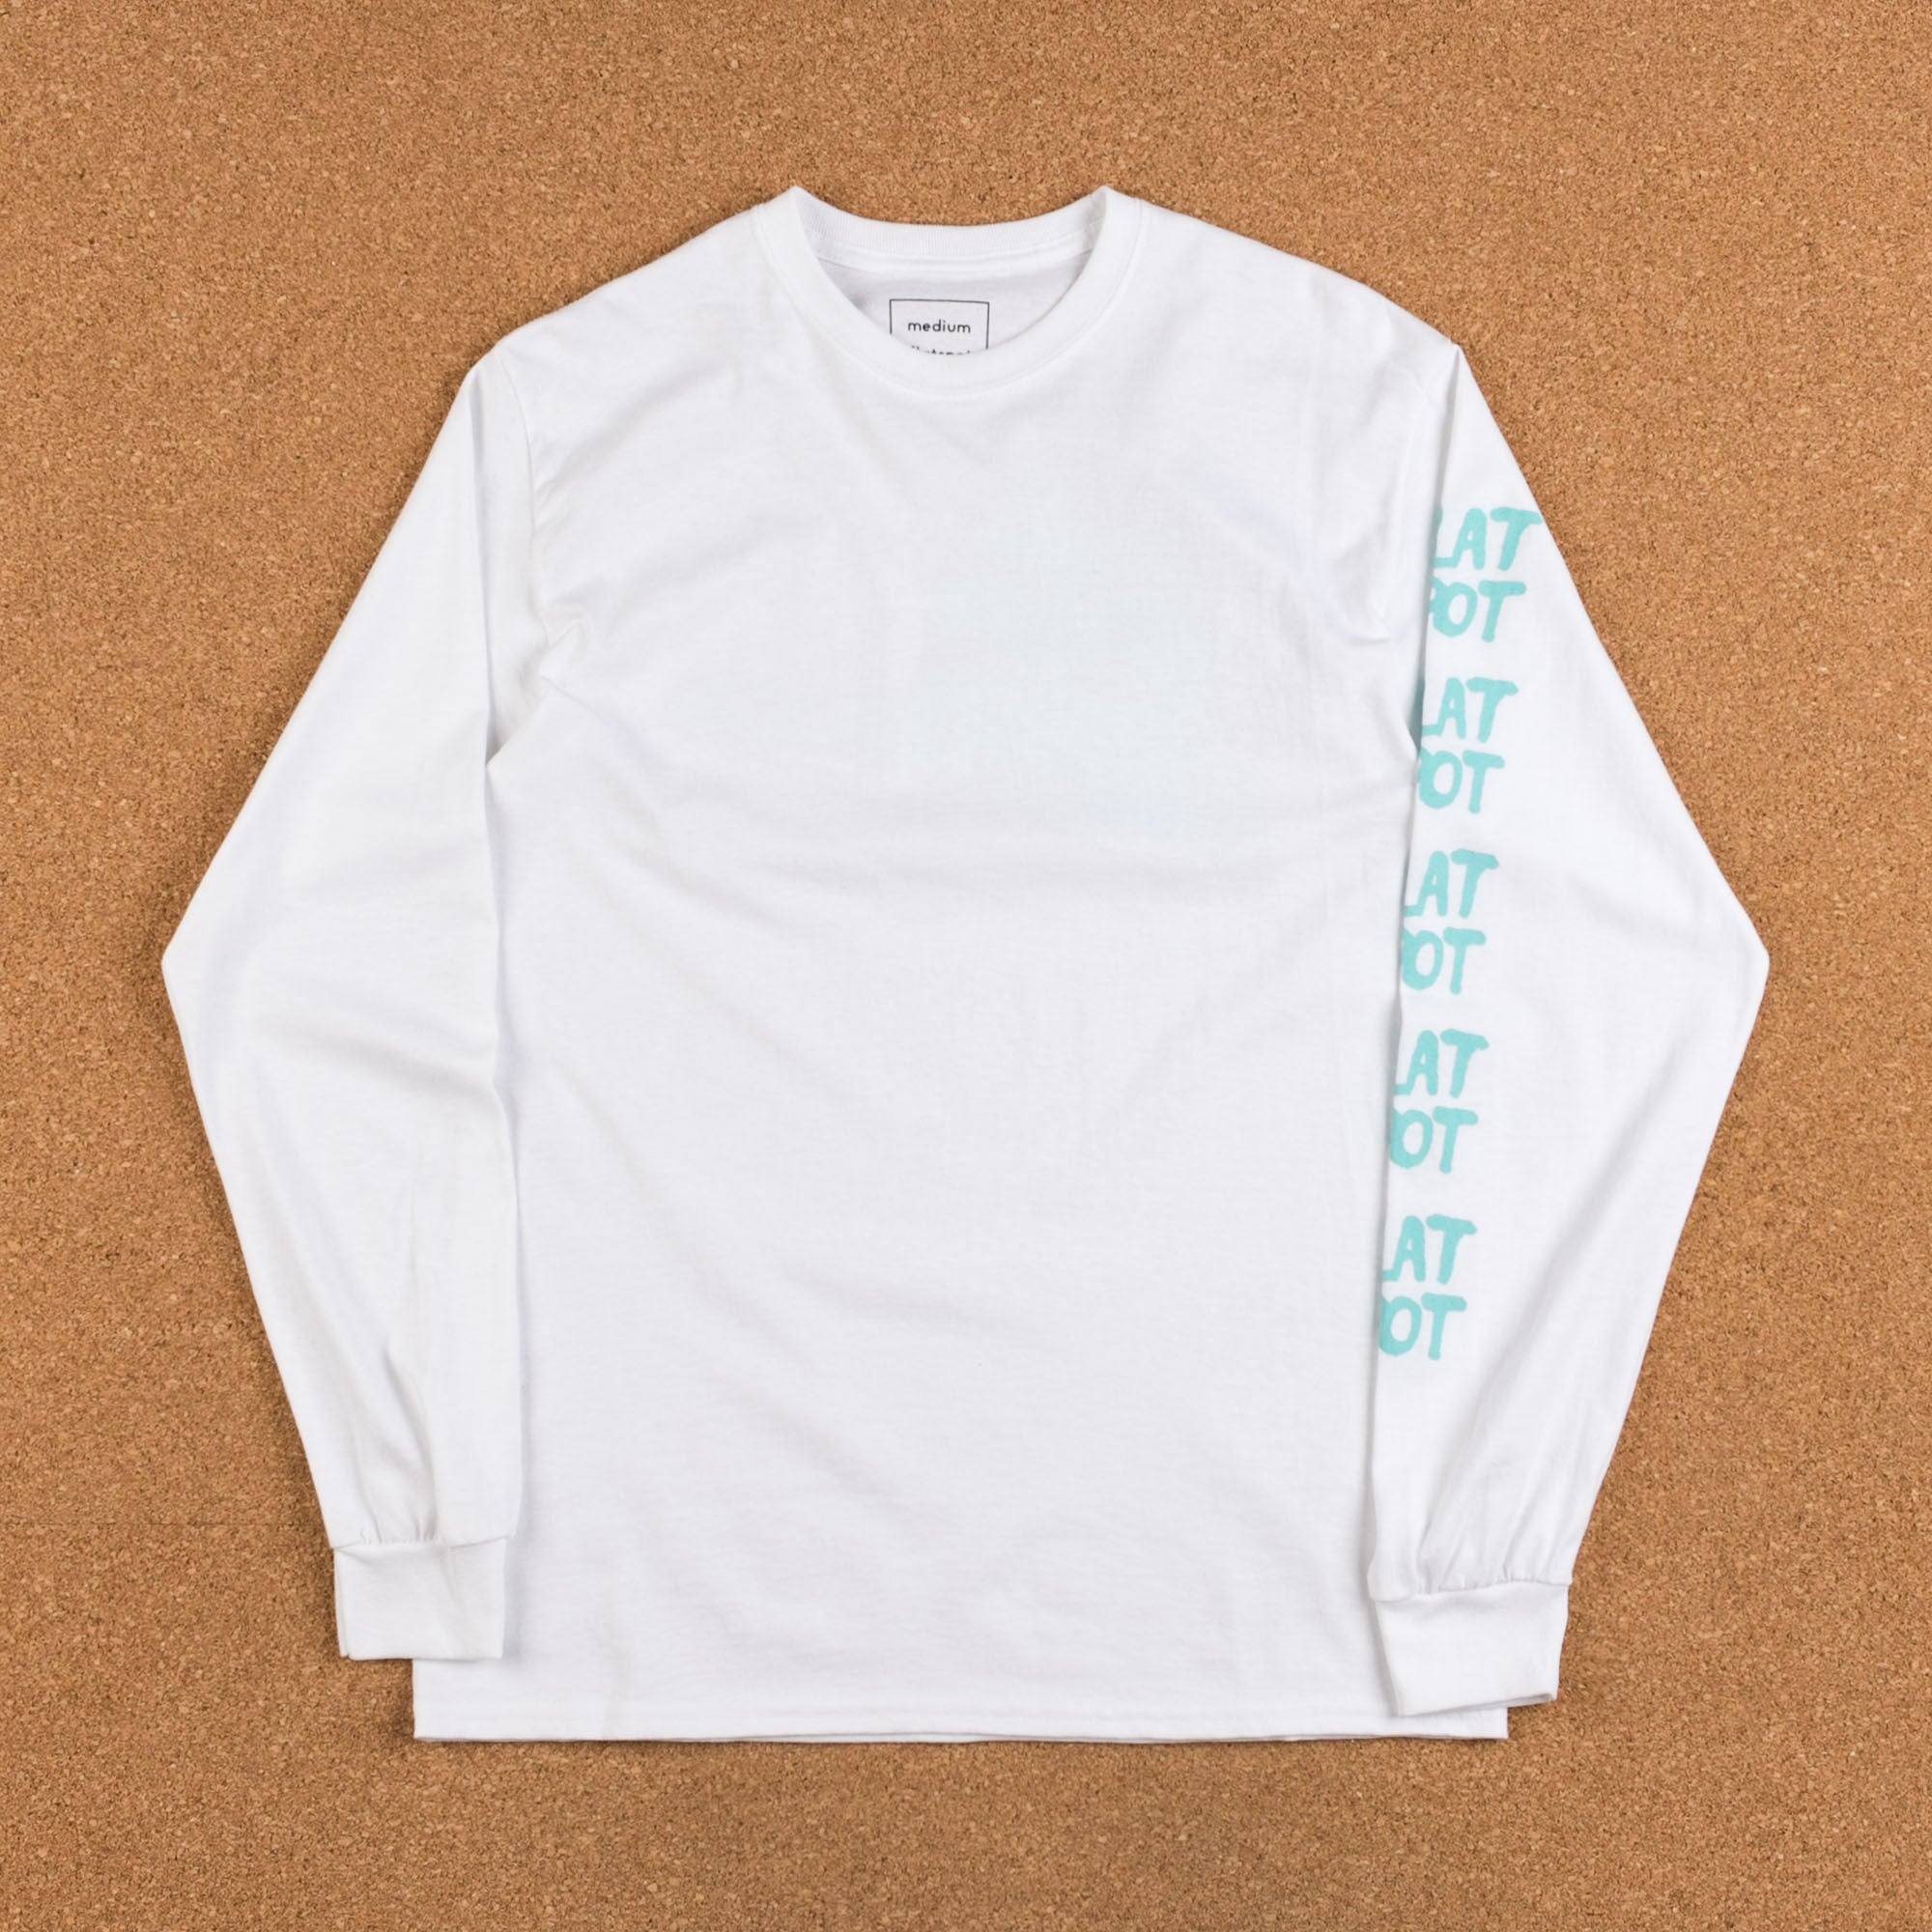 Flatspot Curbsniffer Long Sleeve T-Shirt - White / Blue